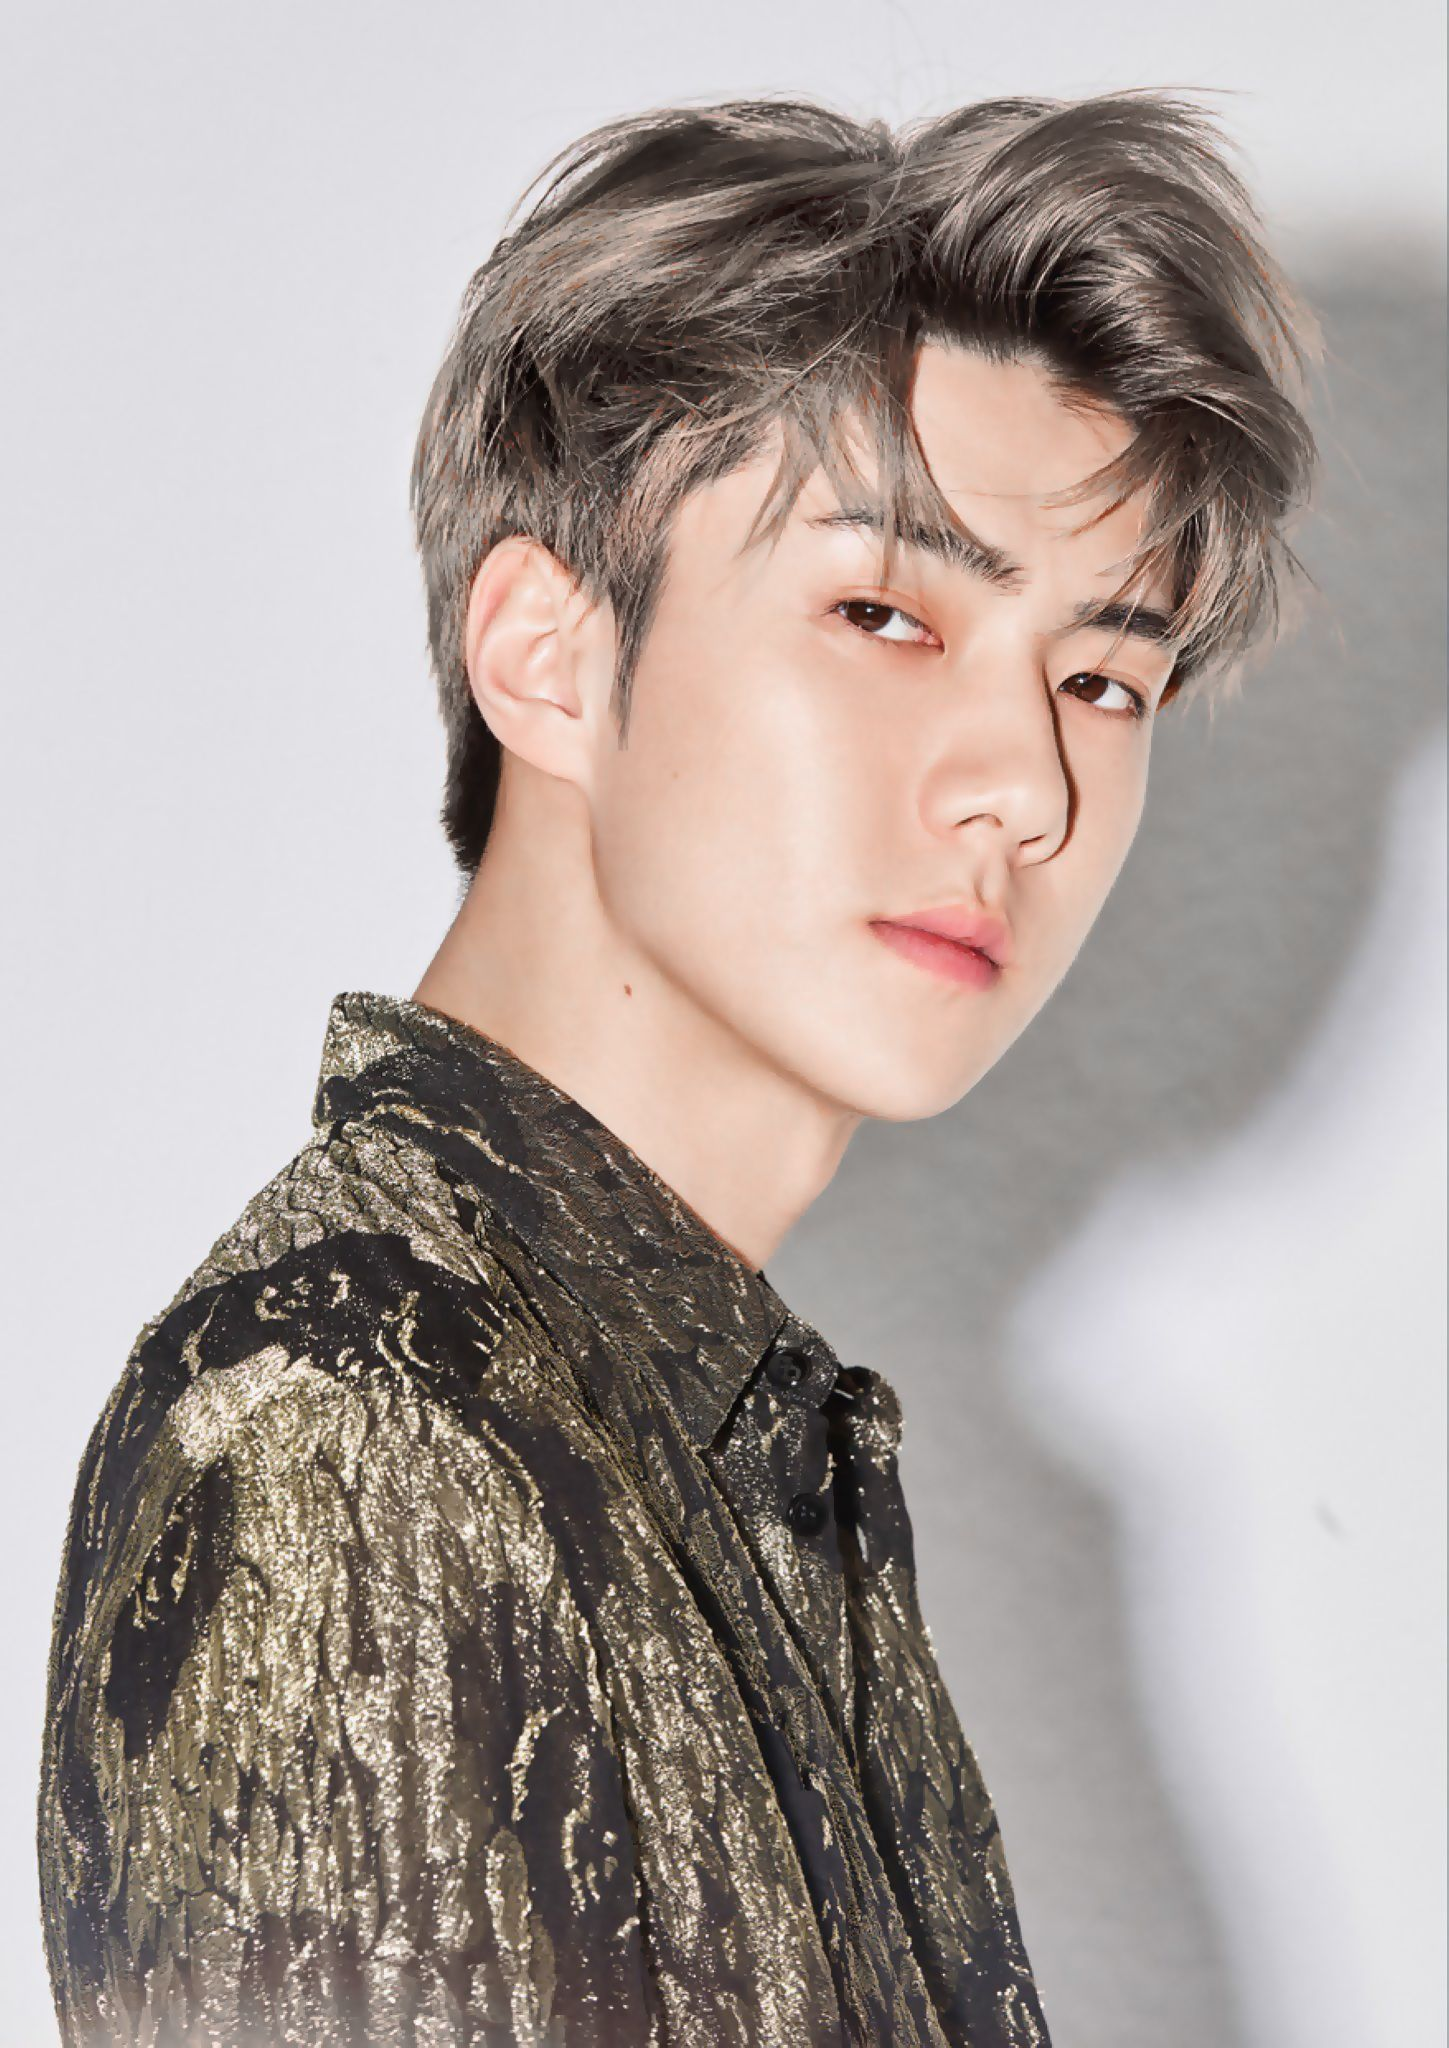 5 outfits inspired by Sehun and his dressing style